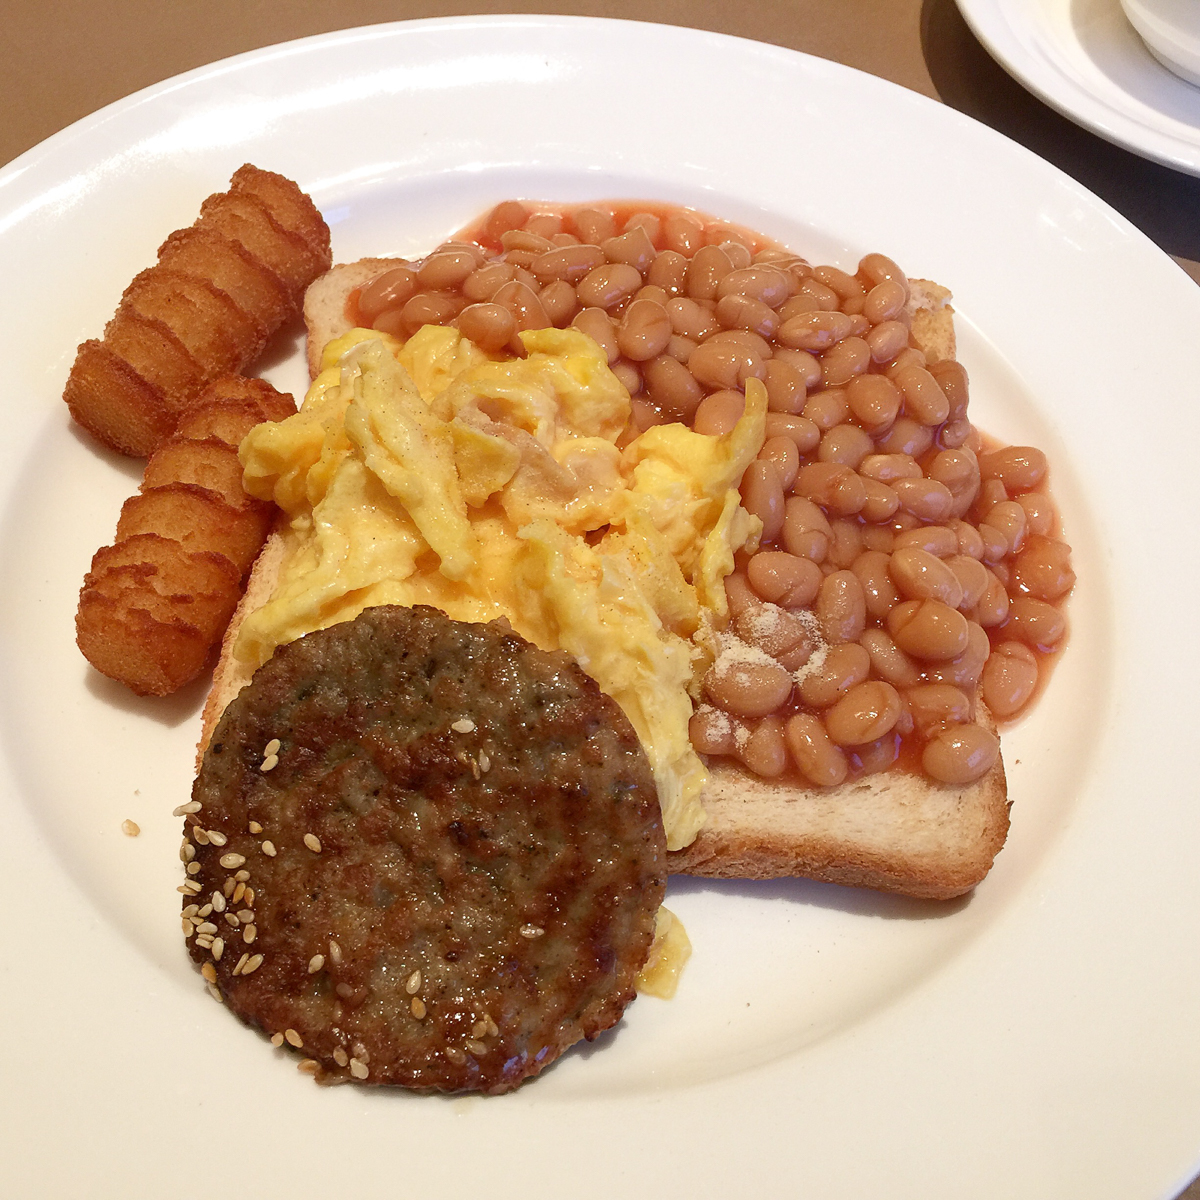 Toast with scrambled eggs and baked beans with a hamburger rissole and deep fried potato